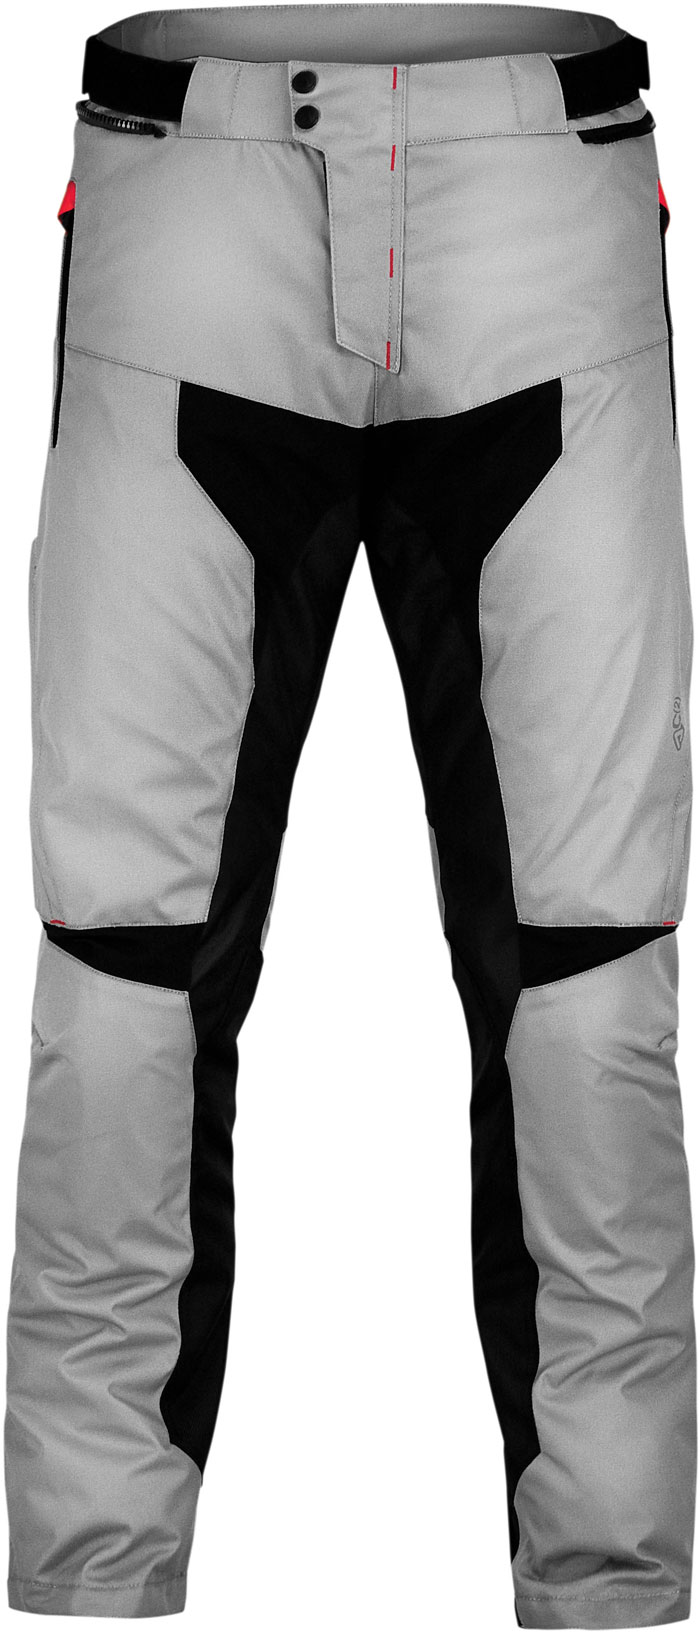 Motorcycle trousers Acerbis Adventure Black Grey